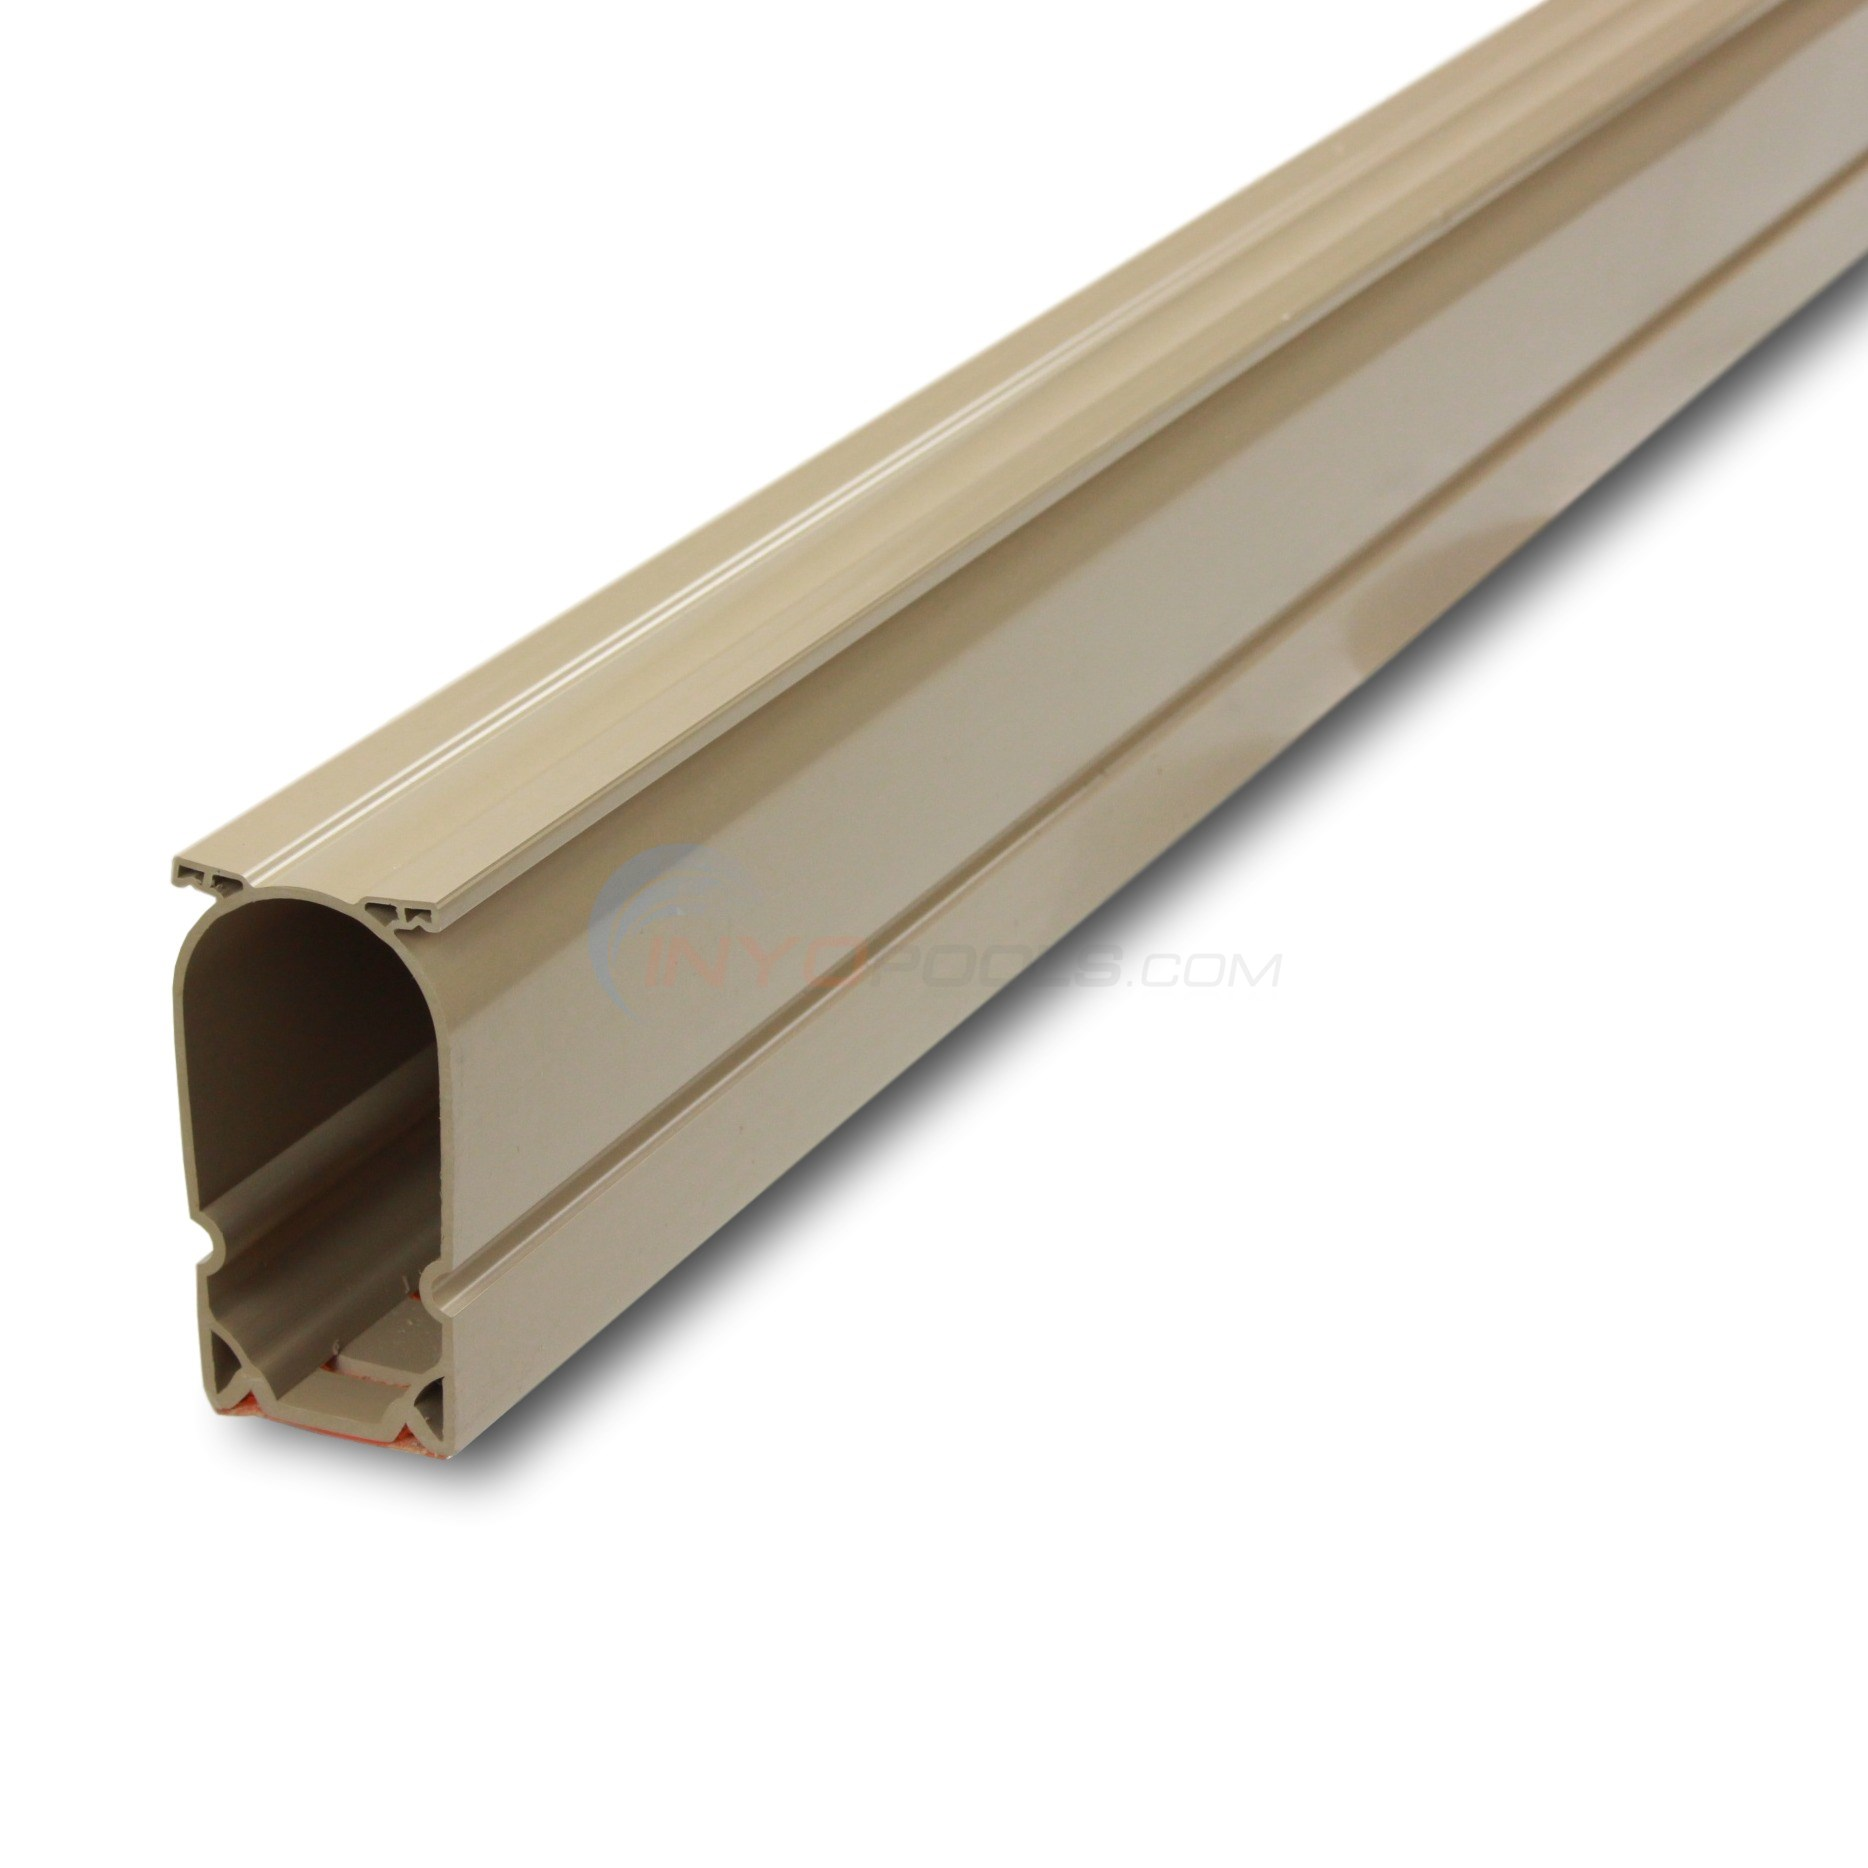 Stegmier Channel Drain Tan Case or 16 - 5 Ft. Sections (80 Feet) - CD3T-5